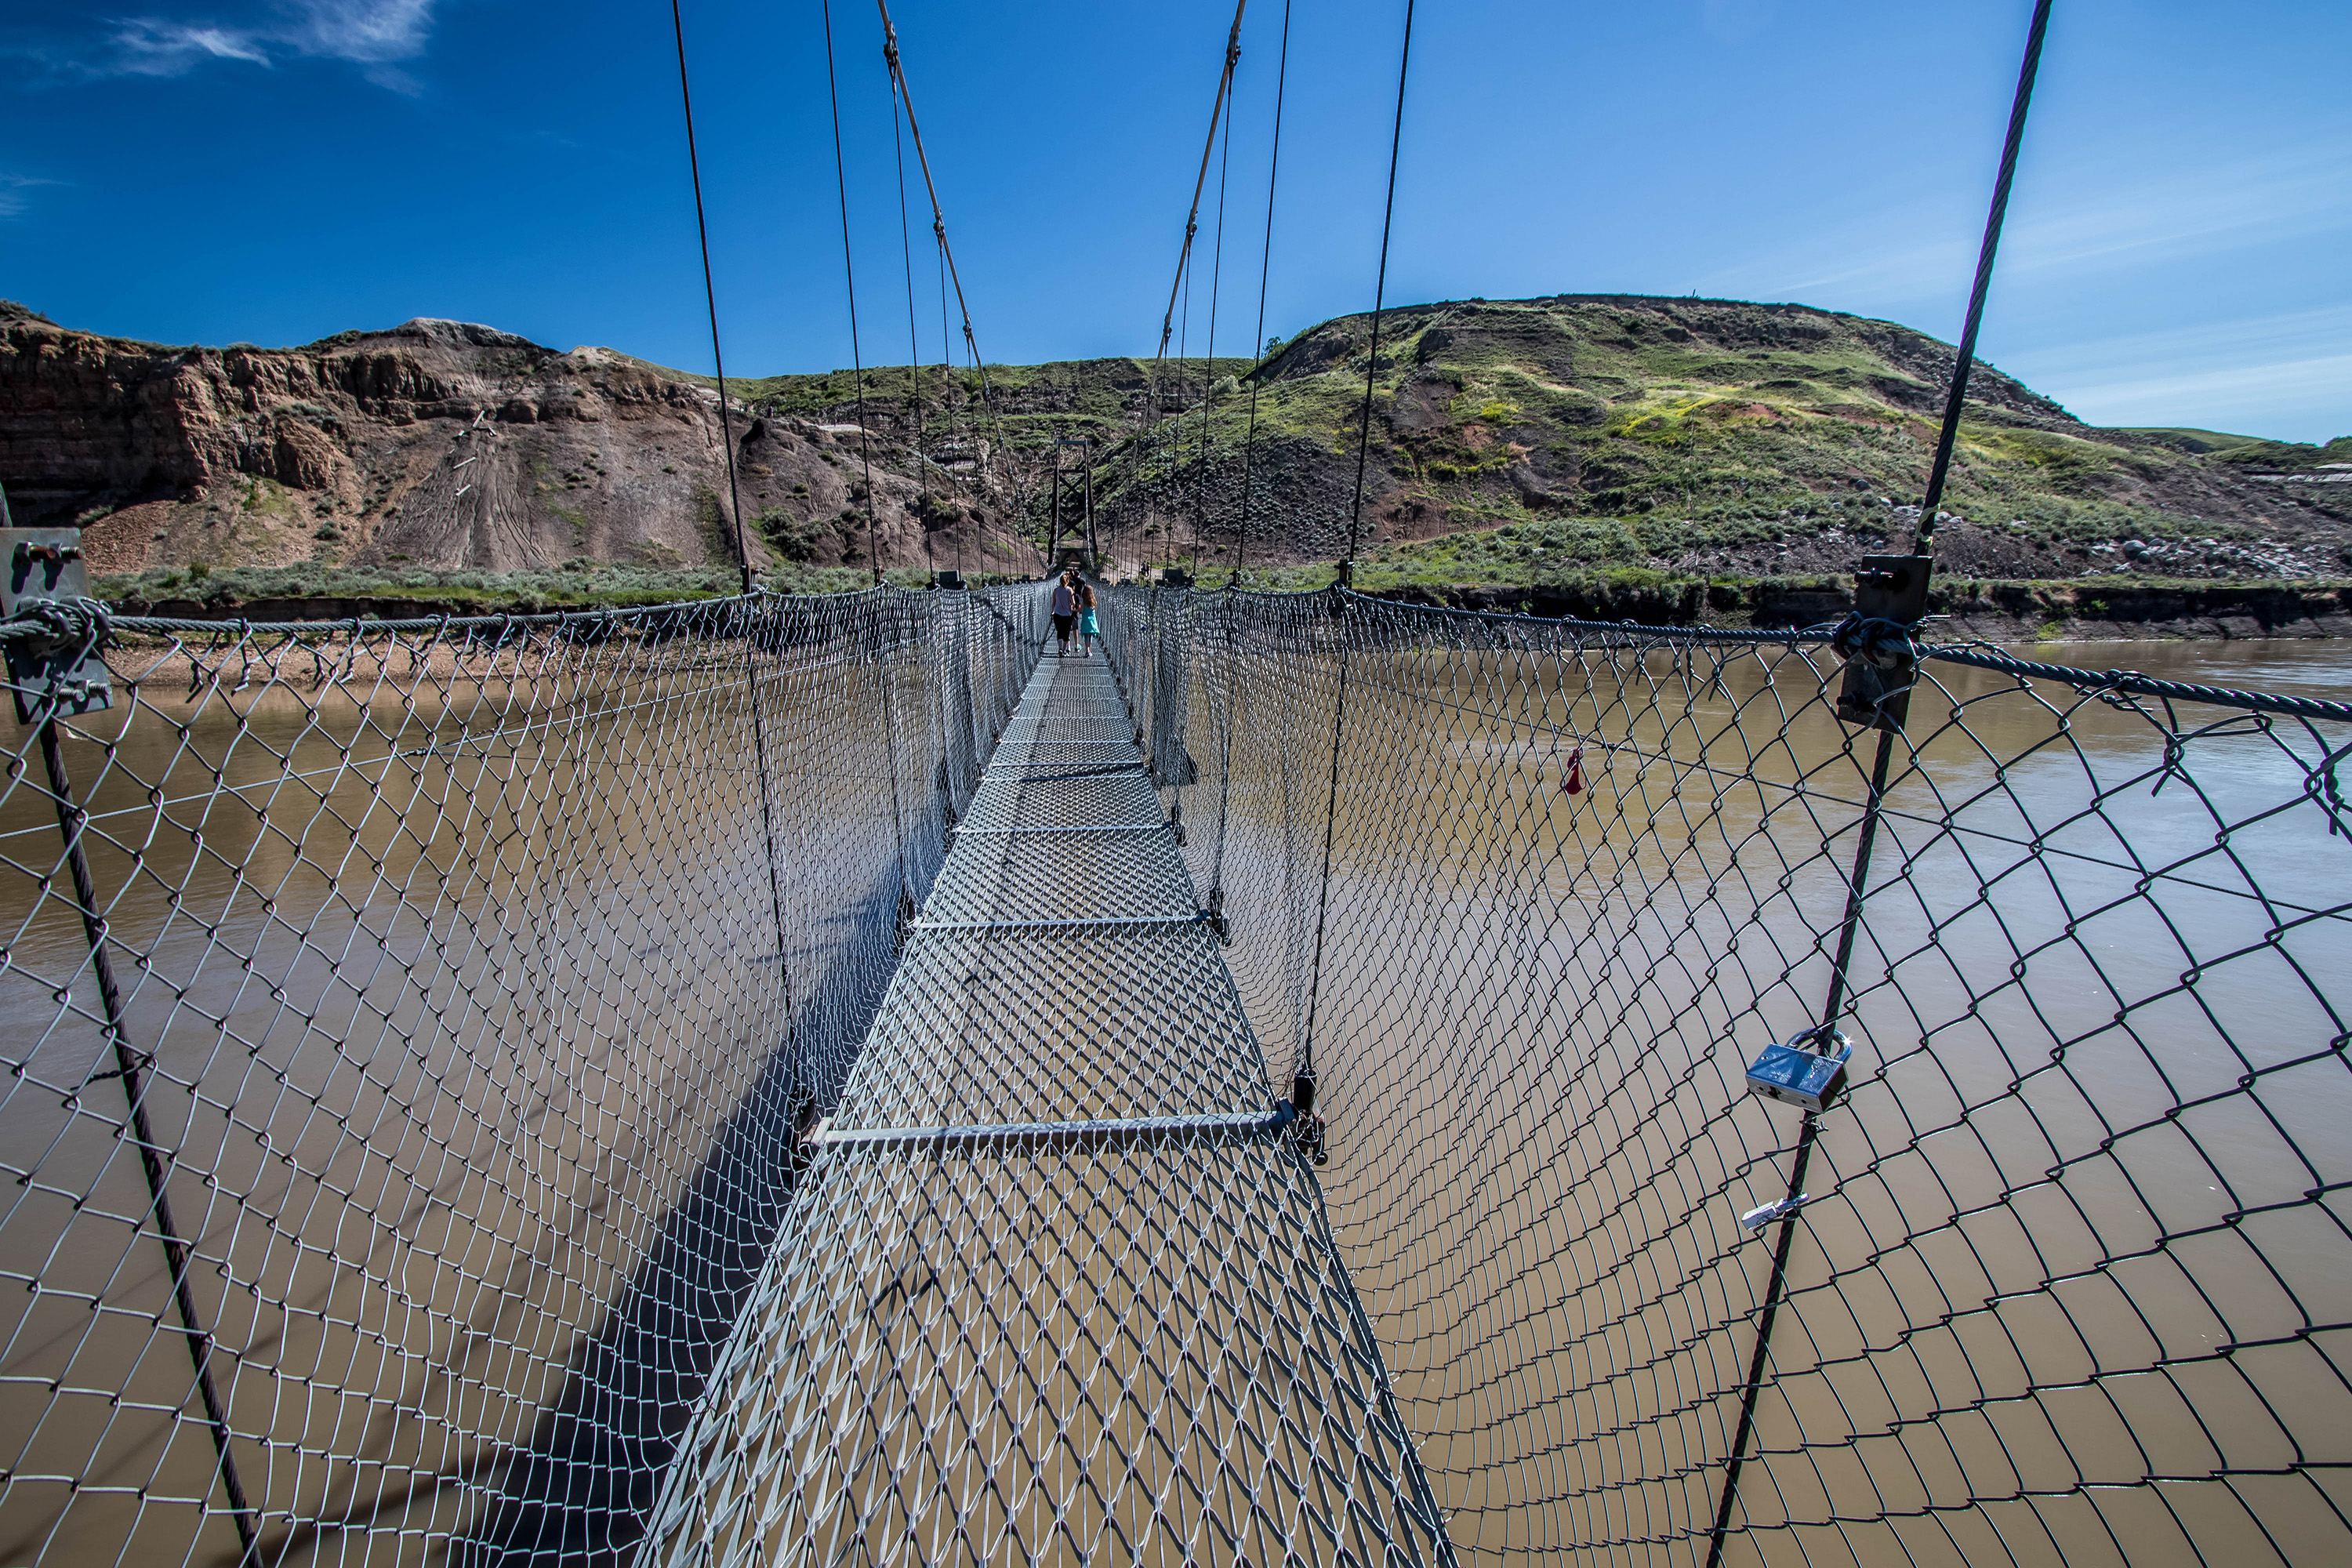 Suspension bridge, Badlands - Marie Naudon